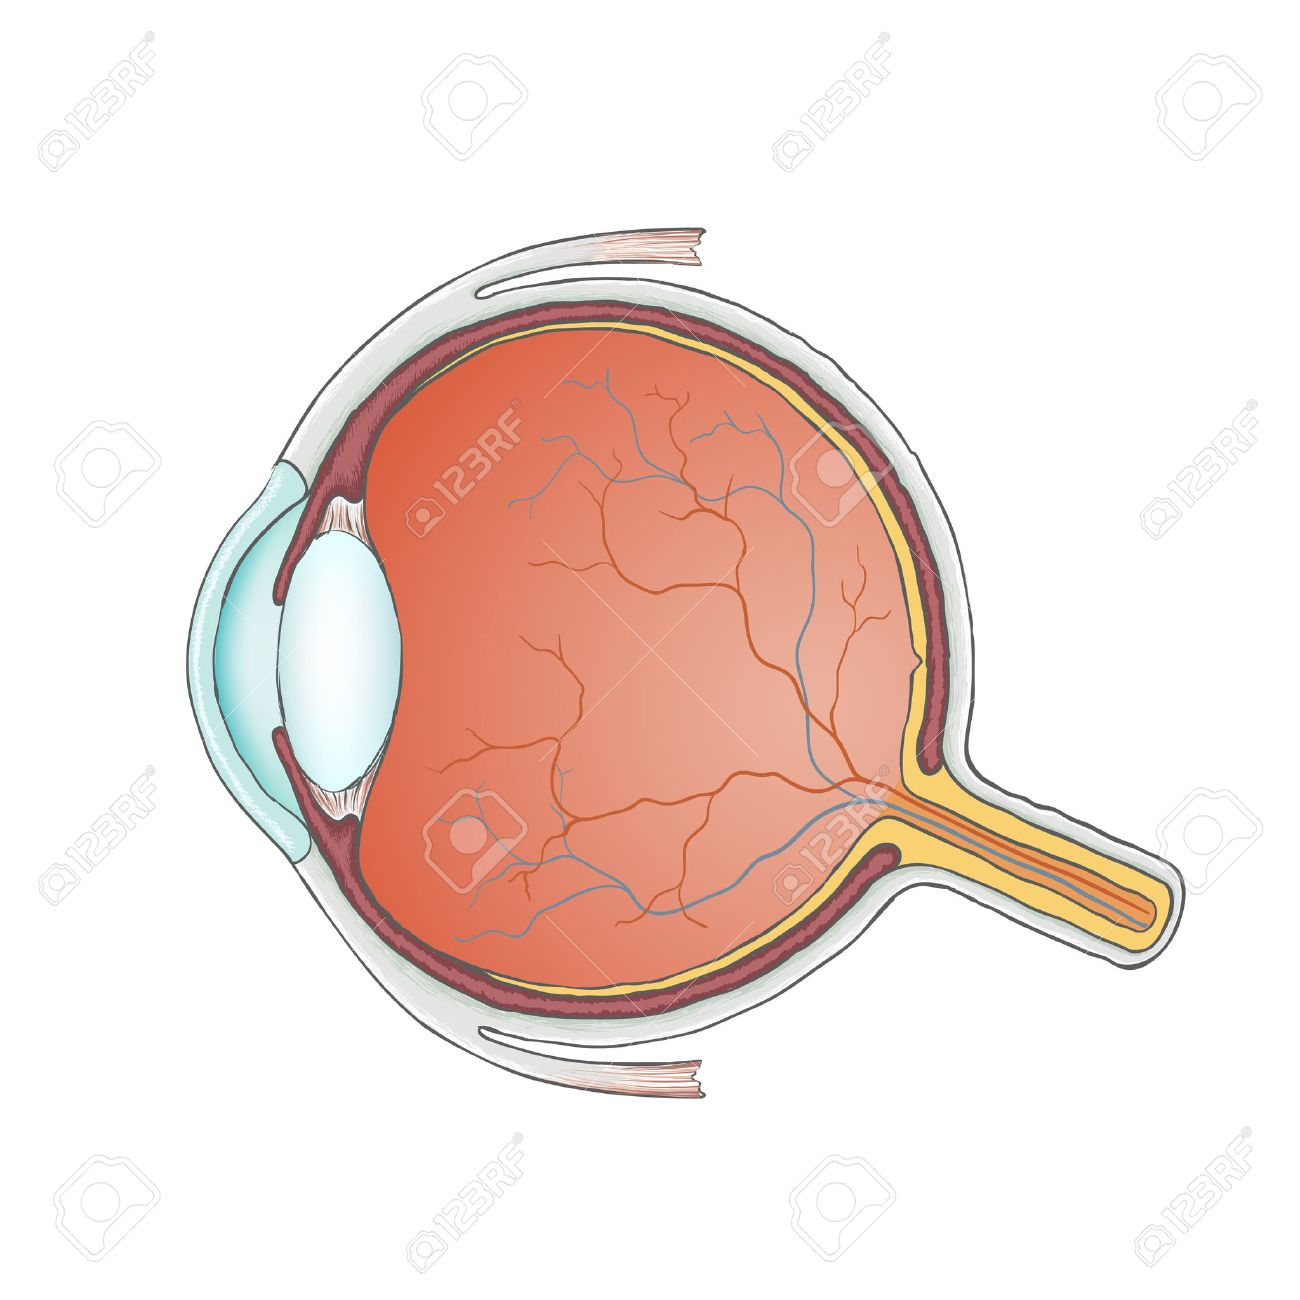 Human Eye. Anatomy. Structure Of The Eyeball. Stock Vector. Royalty ...